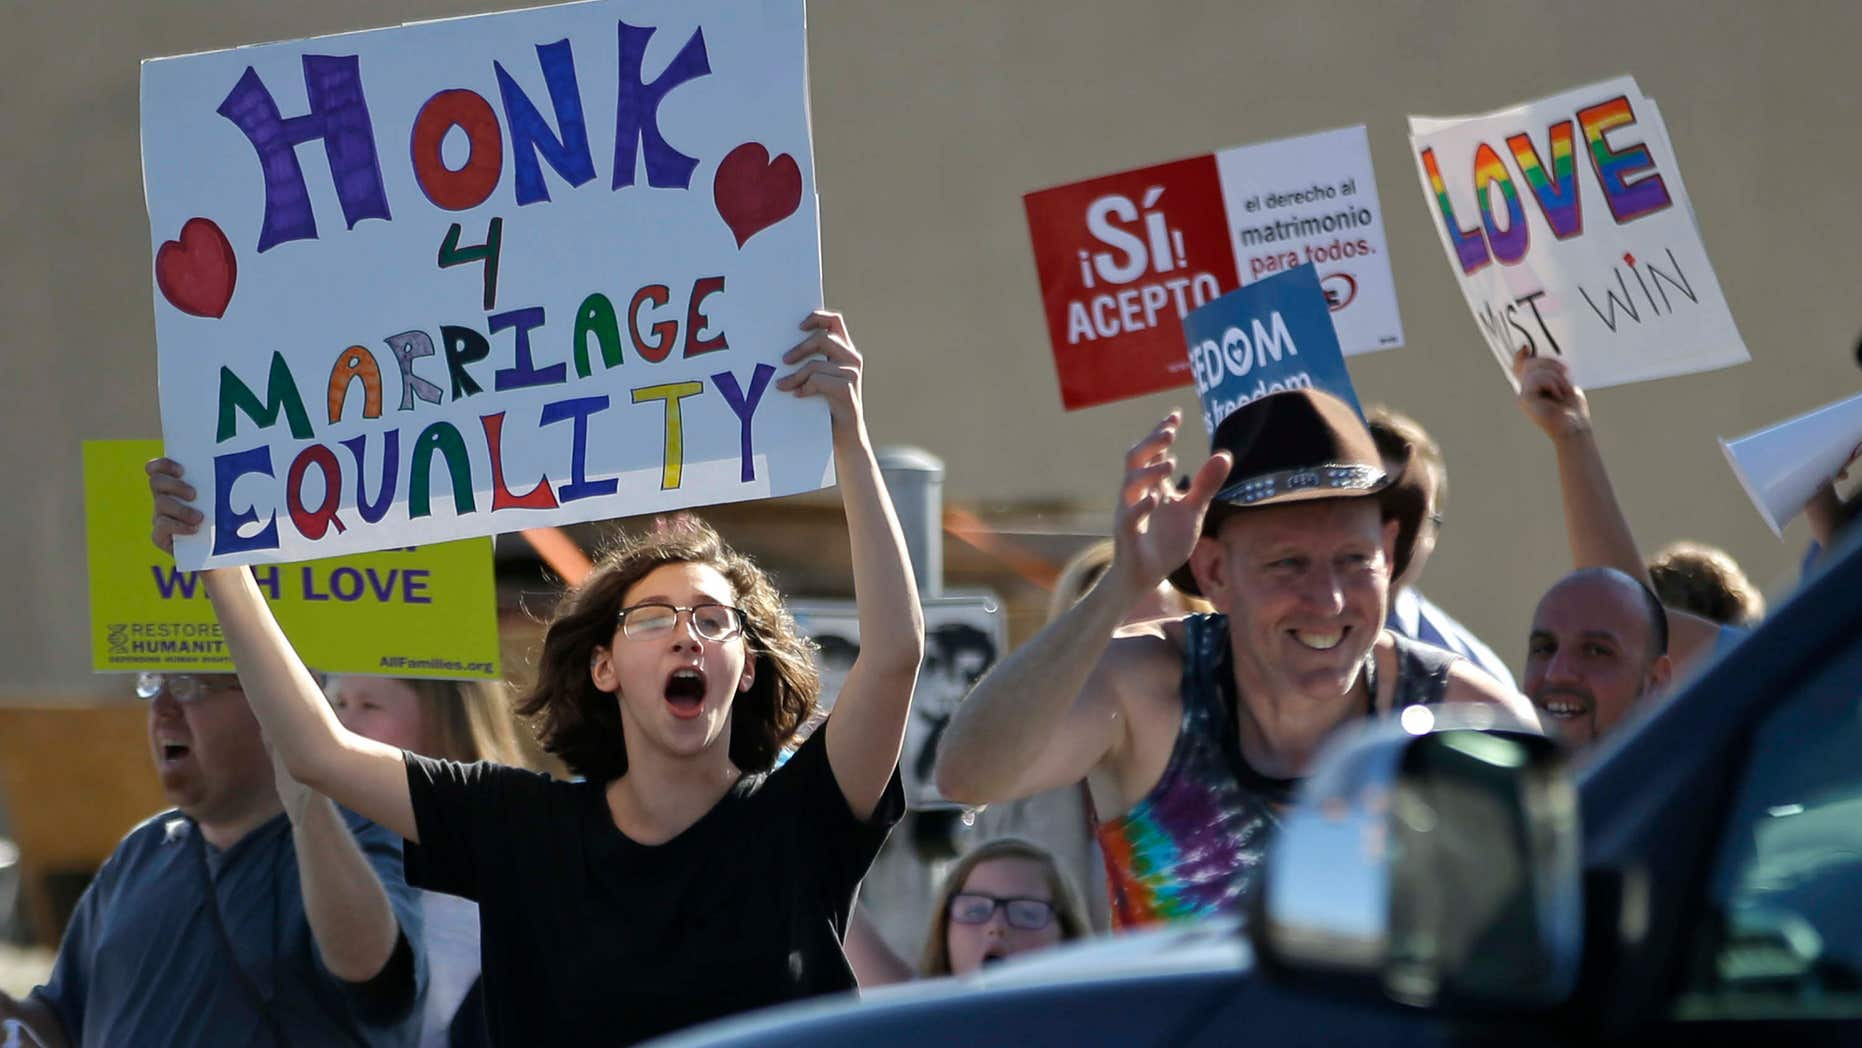 April 28, 2015: Same-sex marriage supporters hold signs encouraging drivers to honk in support of marriage equality during a rally.